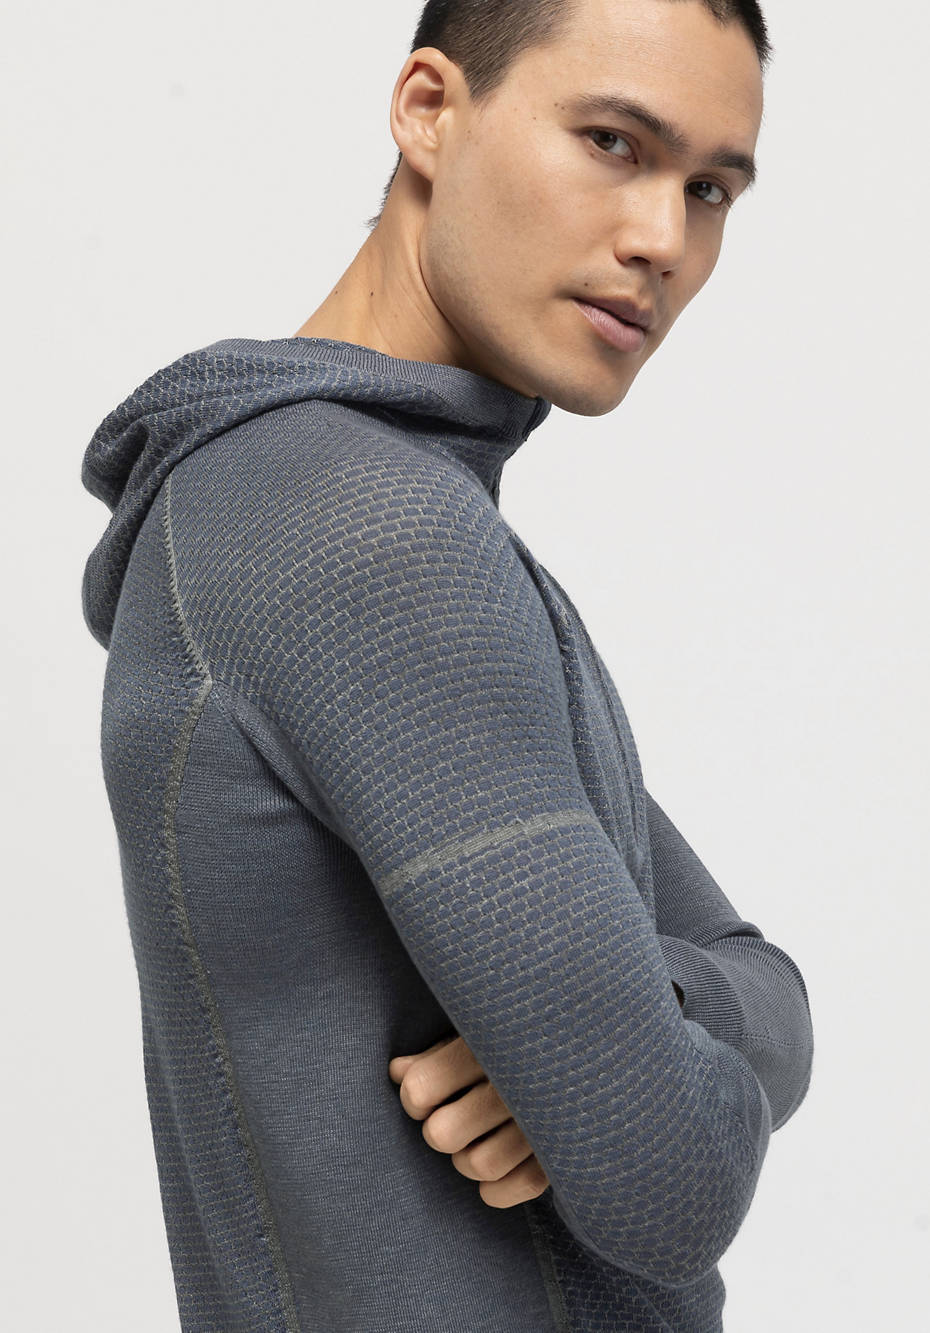 Performance knitted shirt BetteRecycling made of merino wool with silk